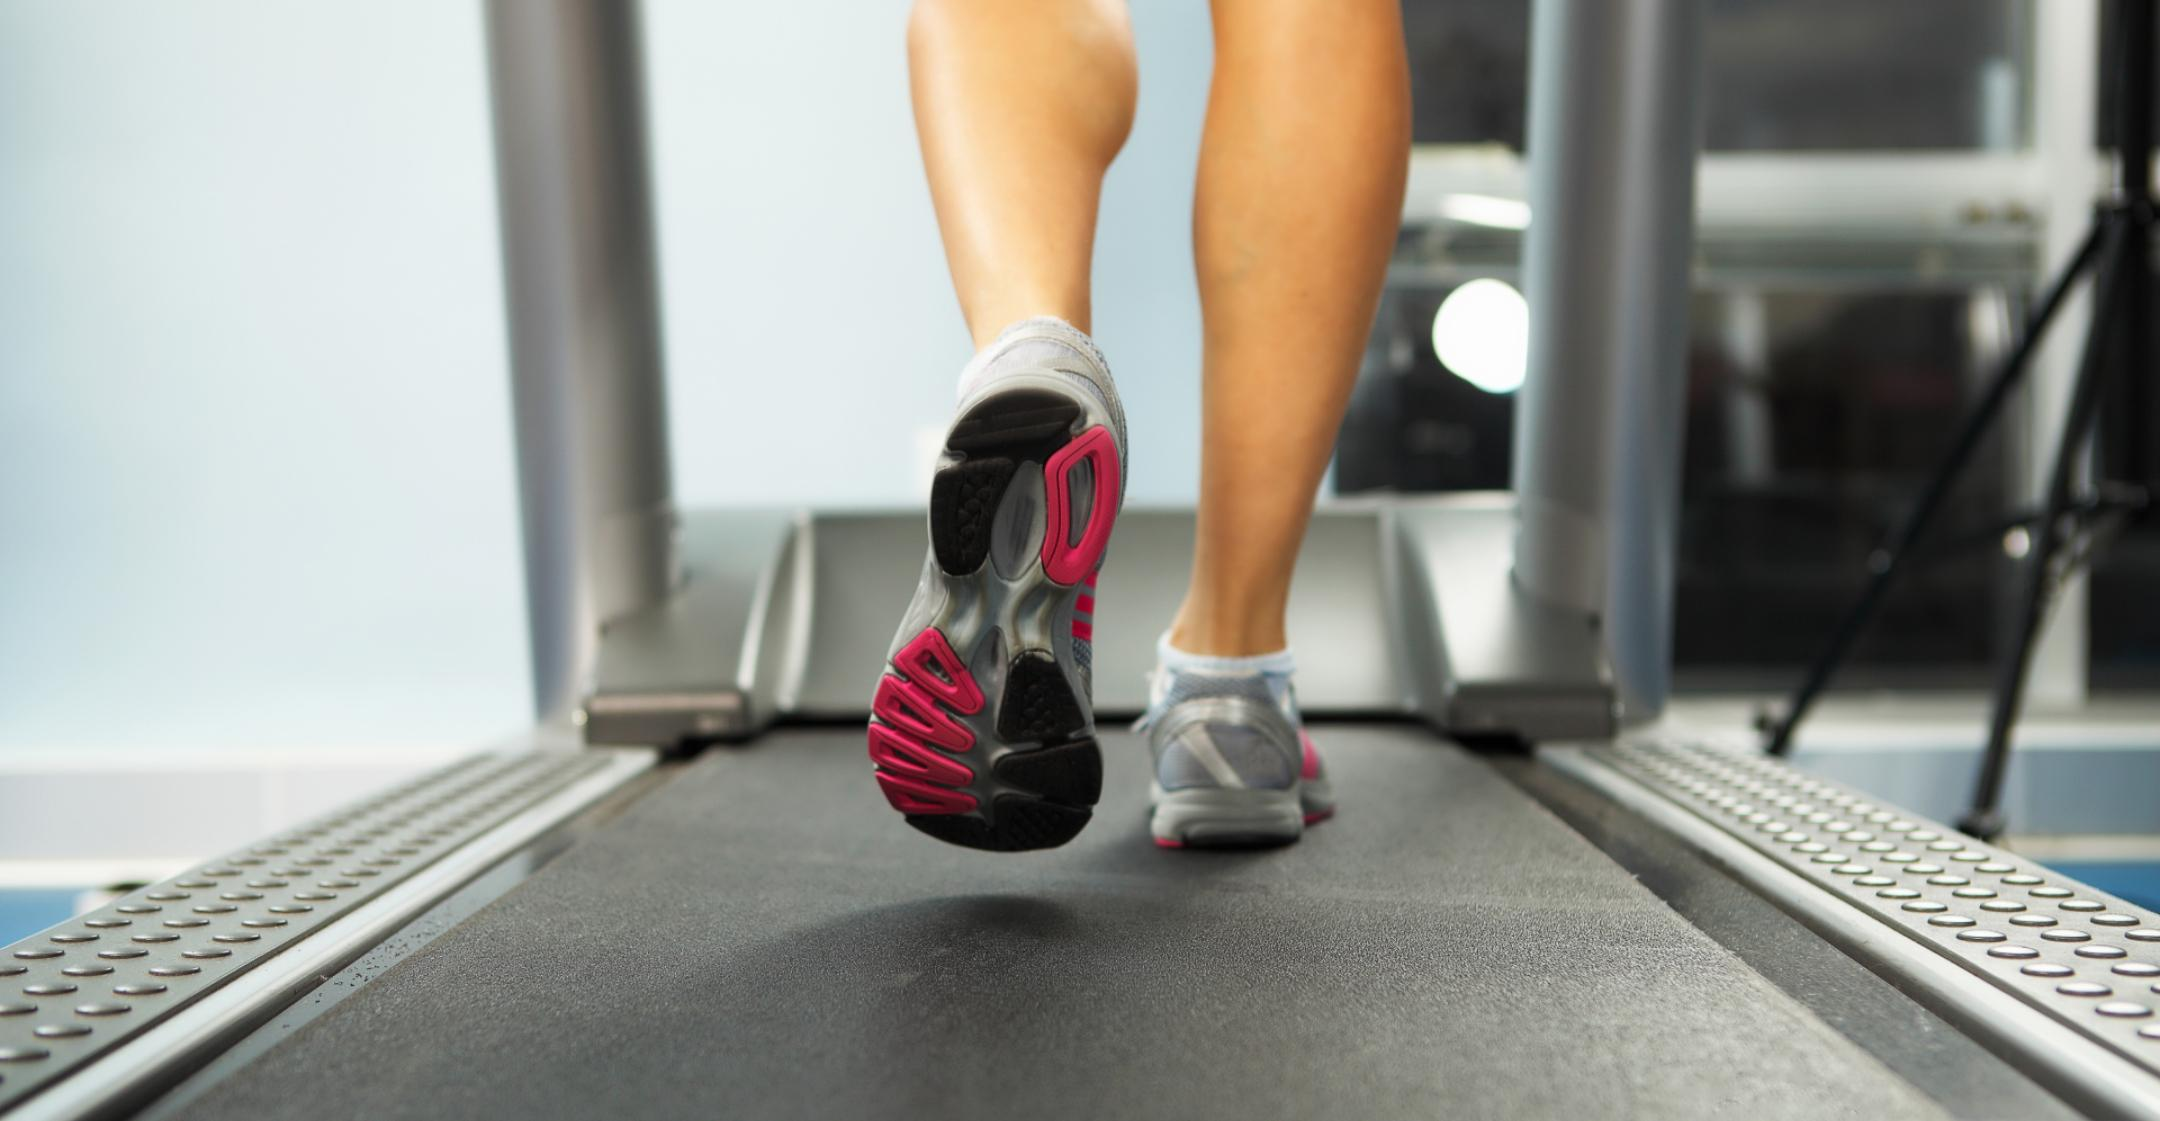 peloton is recalling all treadmills after equipment was involved in injuries and death